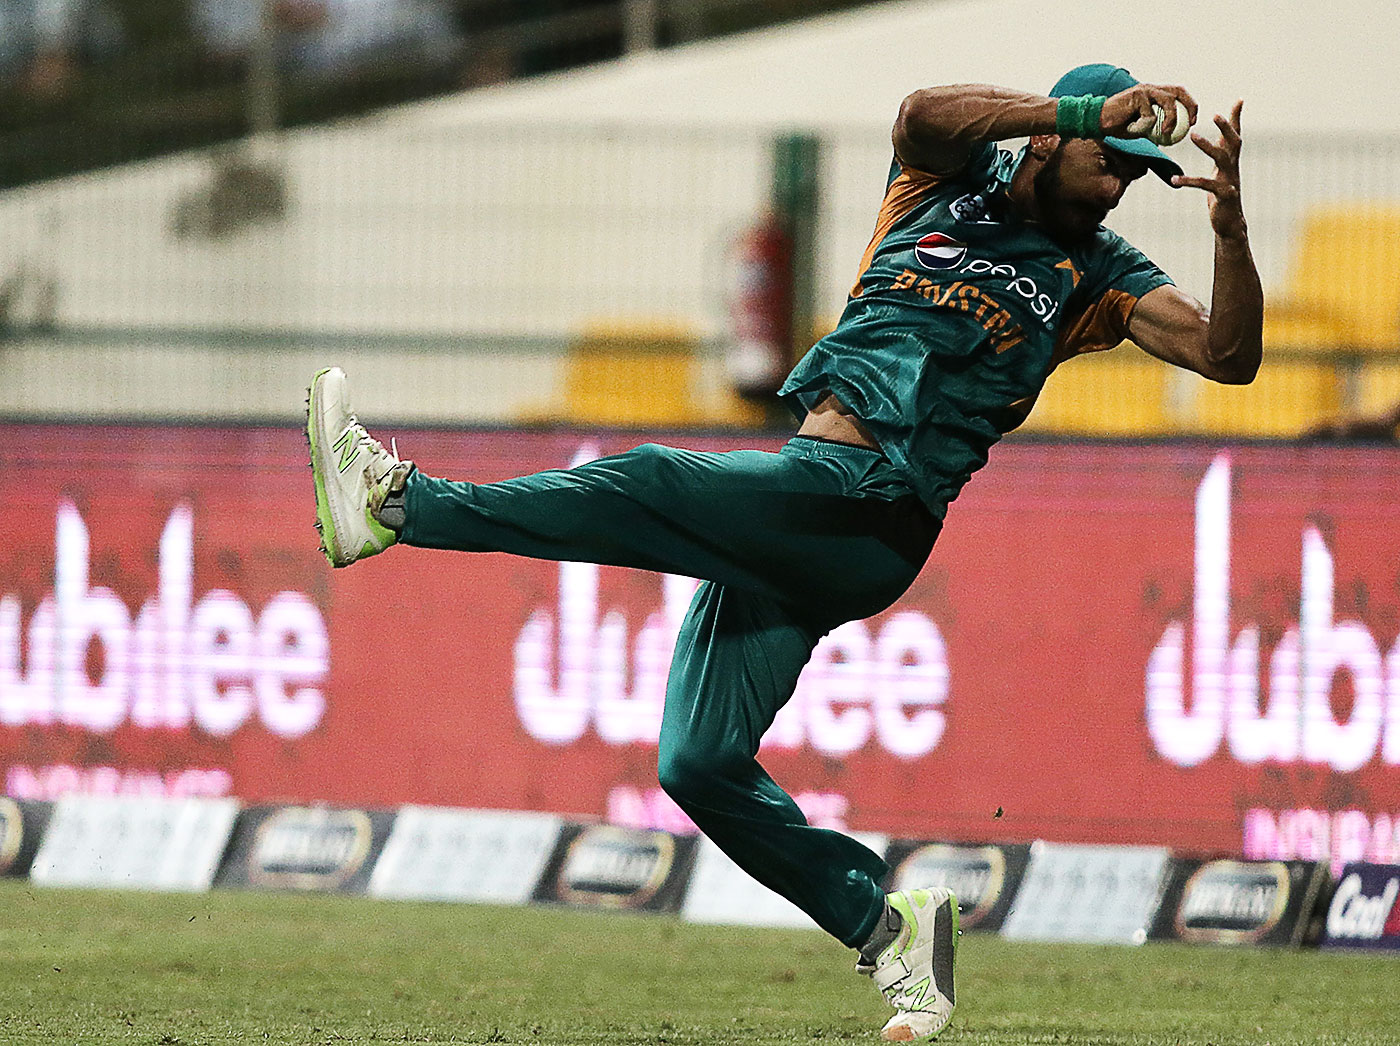 Sharp fielding plays a big role in successfully defending a total in T20s